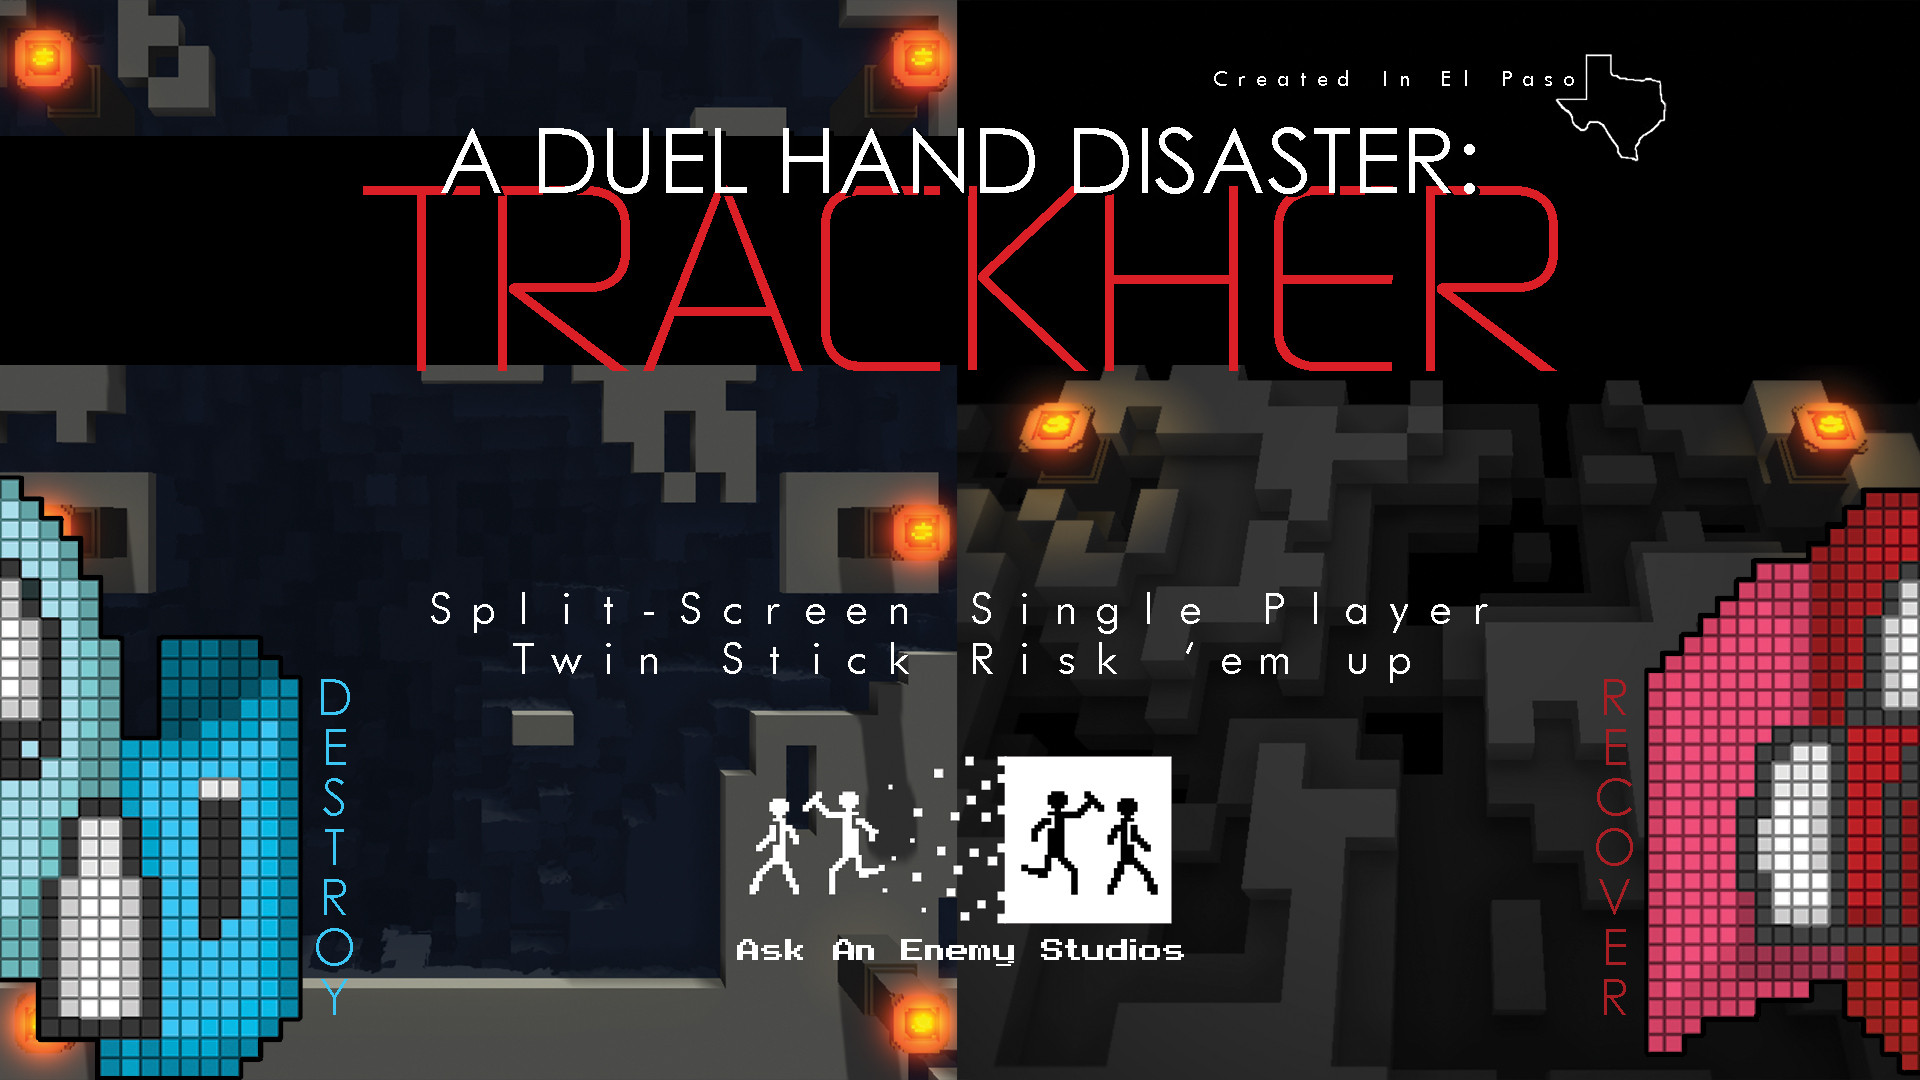 A Duel Hand Disaster: Trackher from Ask An Enemy Studios